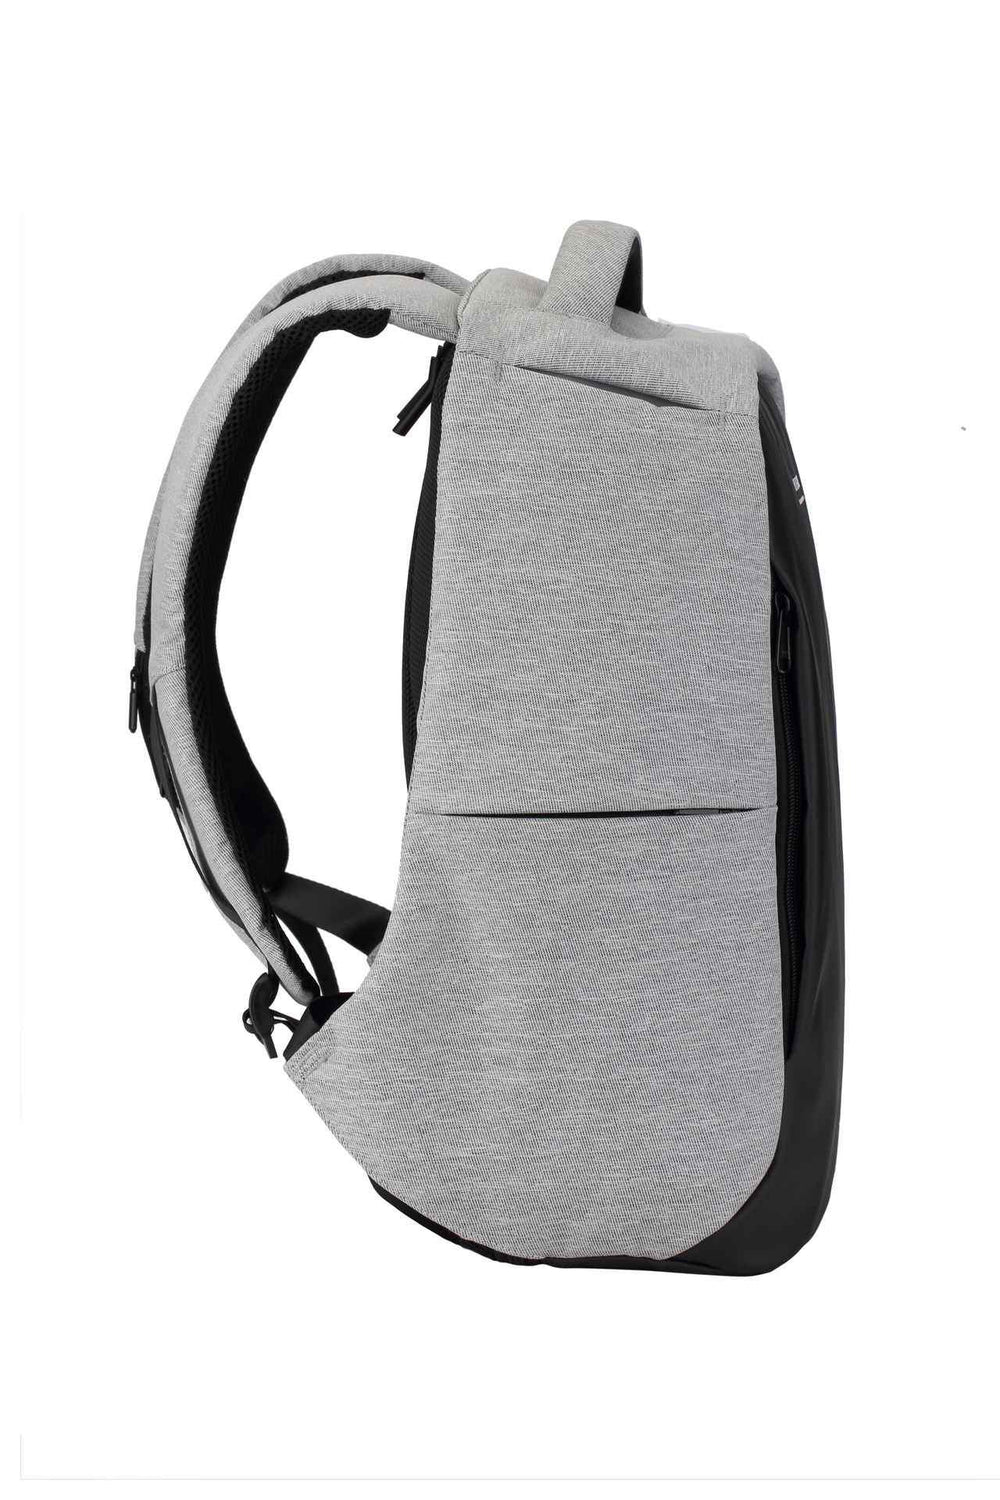 RUIGOR LINK 39 Laptop Backpack Black-Grey